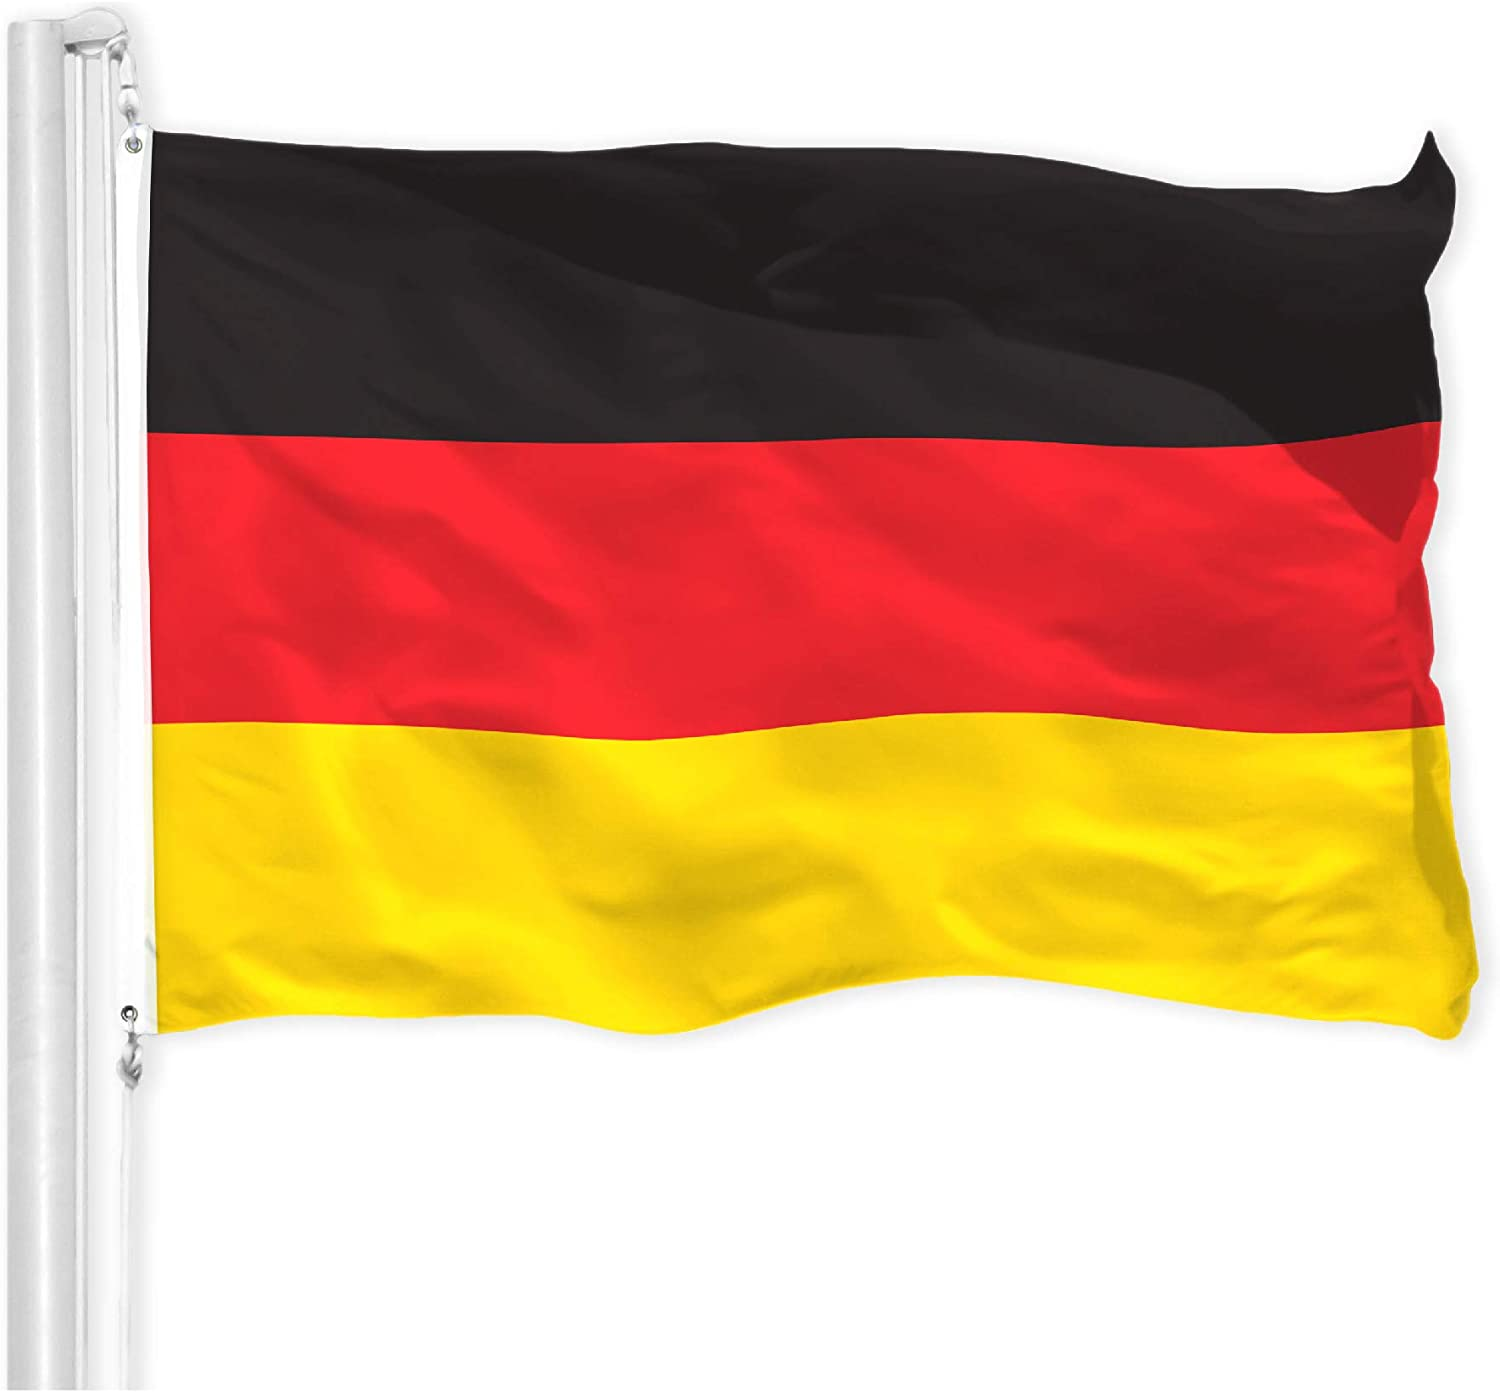 G128 – Germany (German) Flag | 3x5 feet | Printed 150D – Indoor/Outdoor, Vibrant Colors, Brass Grommets, Quality Polyester, Much Thicker More Durable Than 100D 75D Polyester